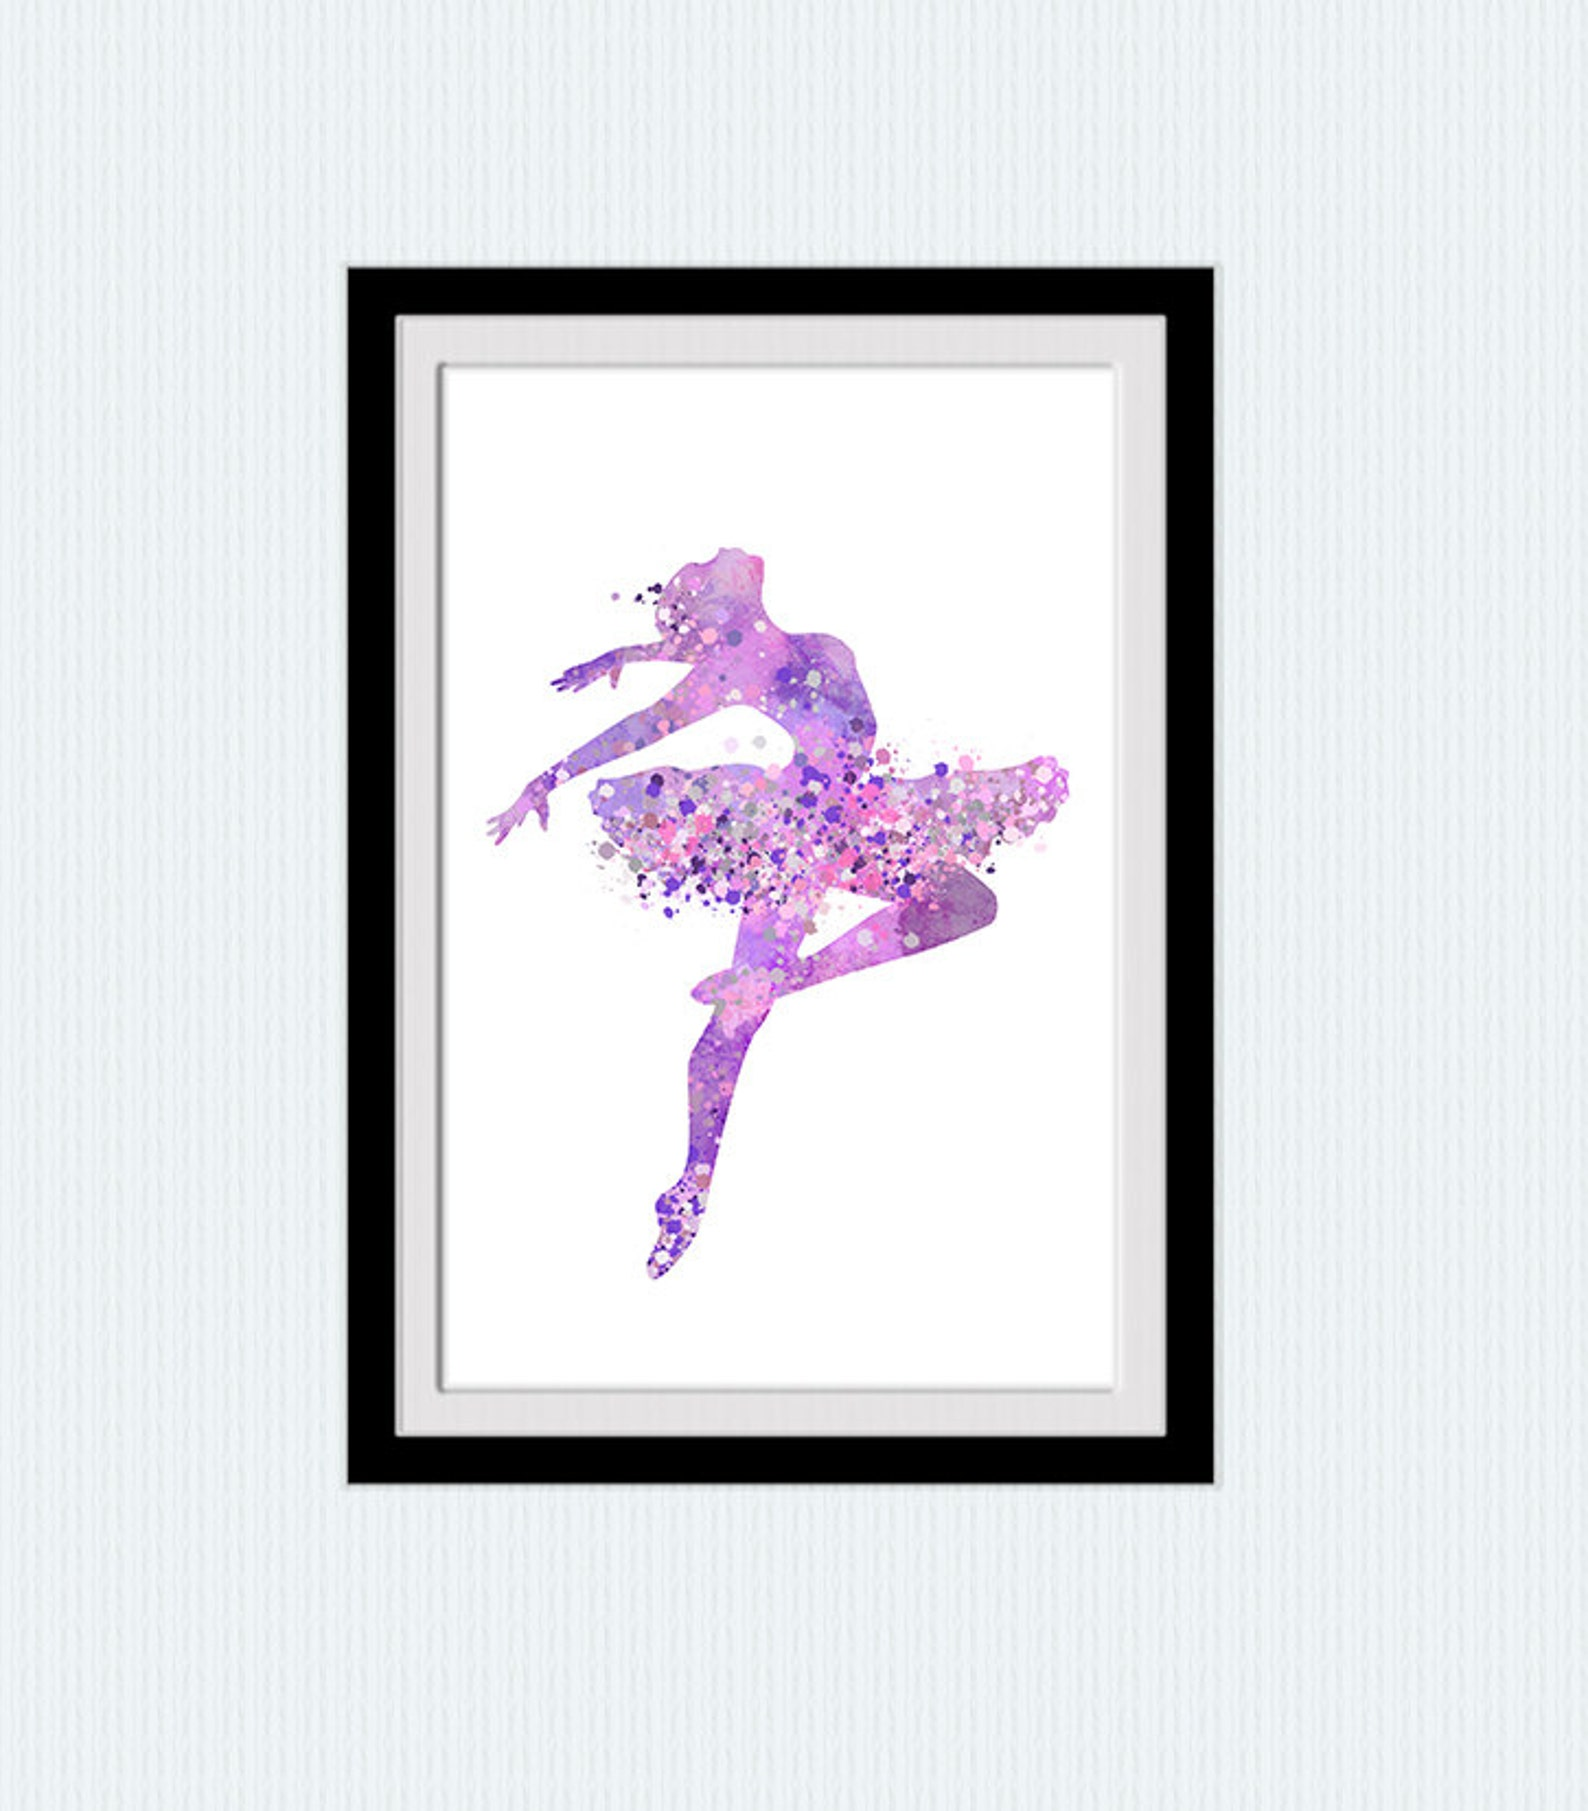 ballerina print ballet studio decor wall hanging art in lilac girls room wall decor ballerina art poster kids room wall art gift